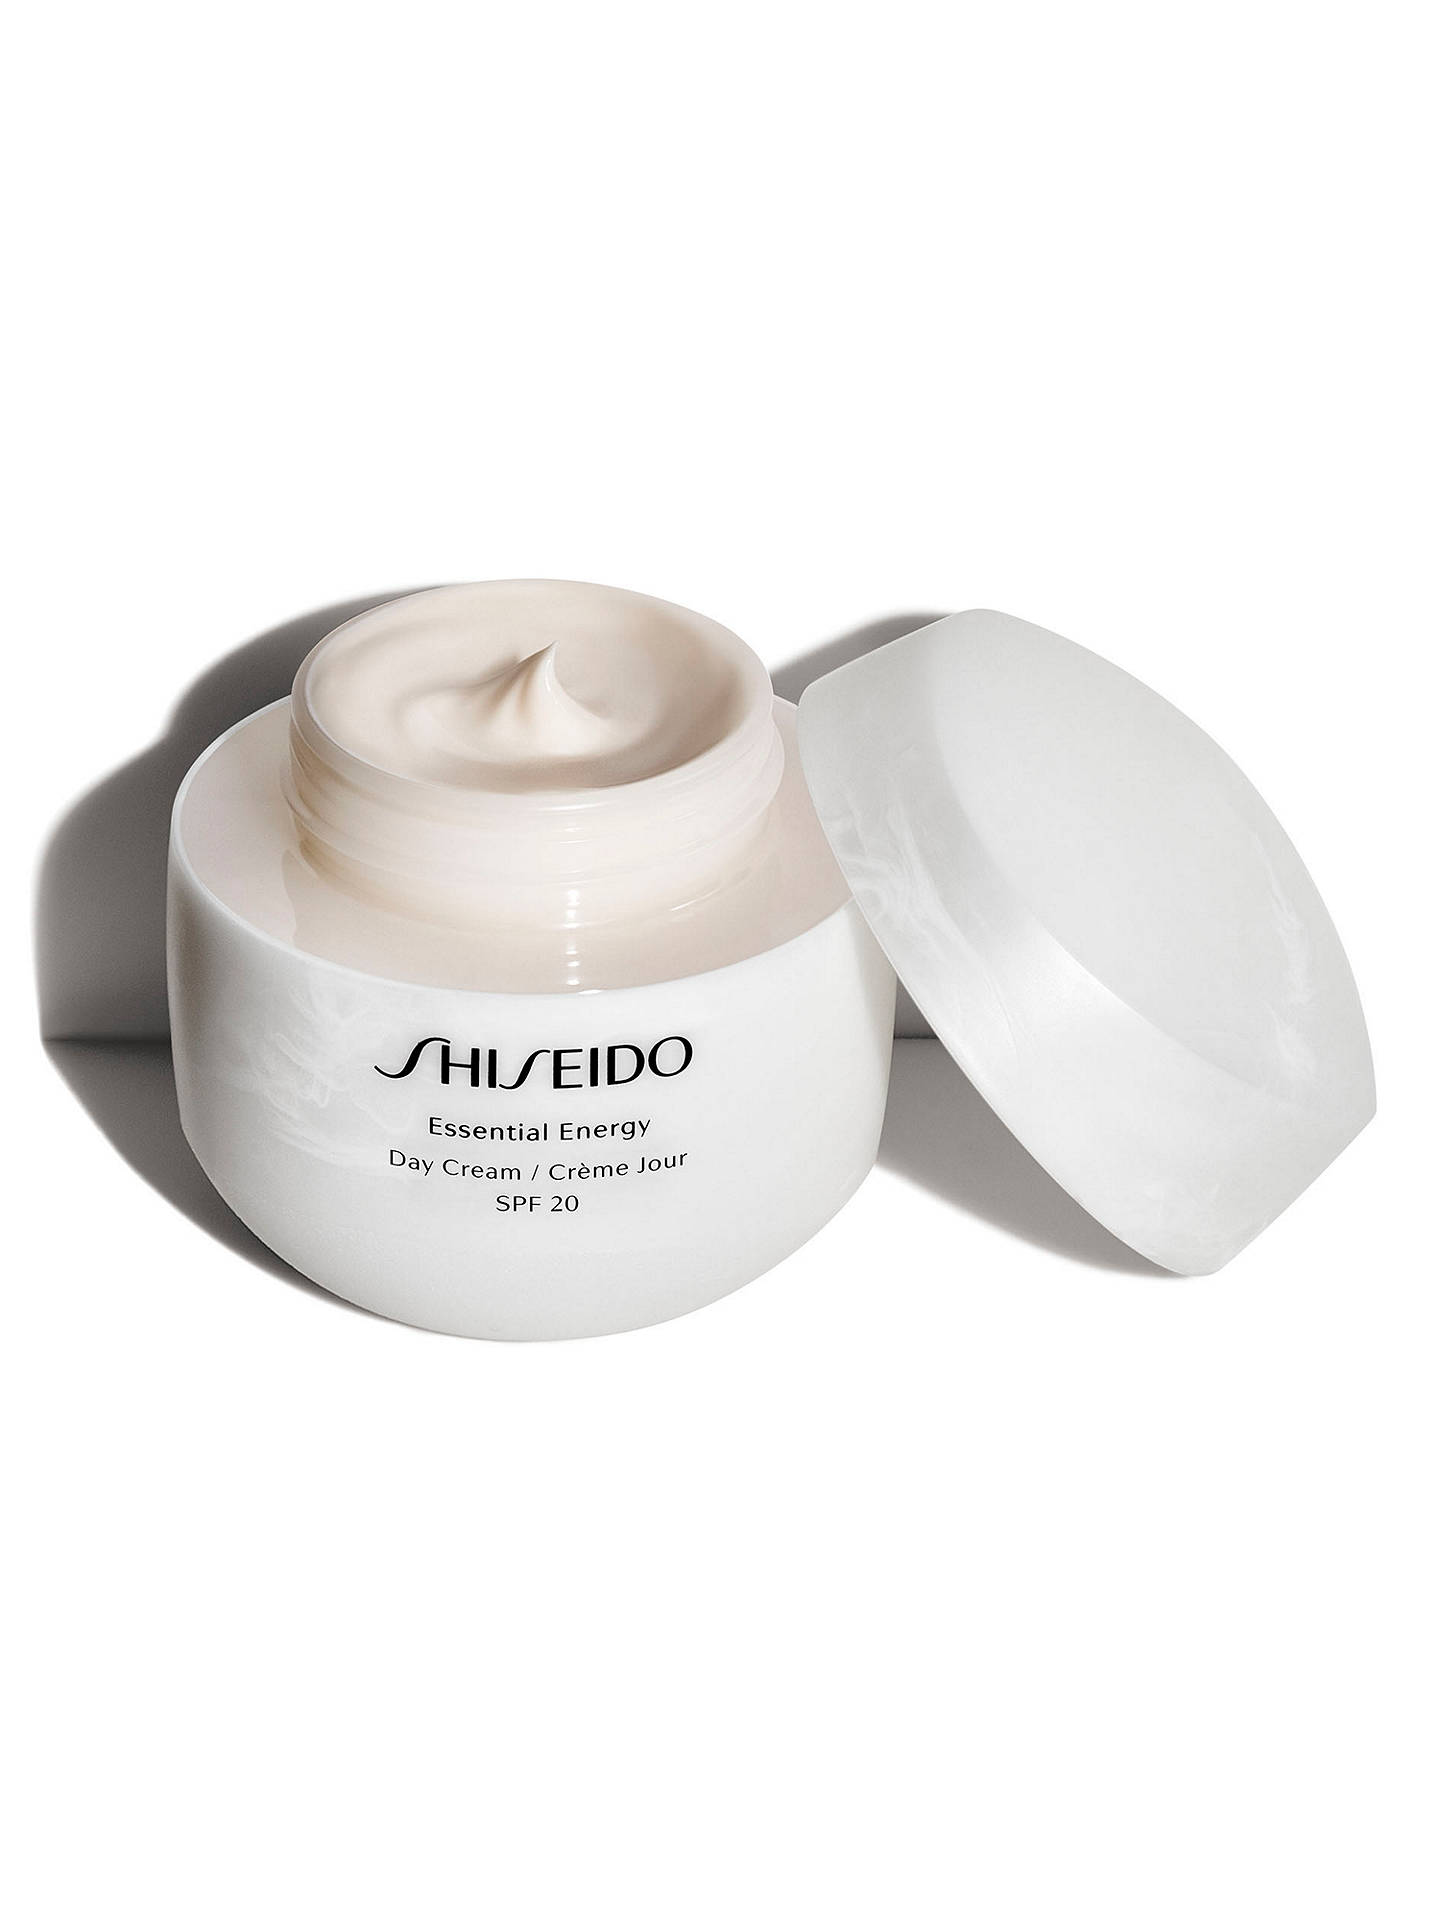 Buy Shiseido Essential Energy Day Cream SPF 20, 50ml Online at johnlewis.com